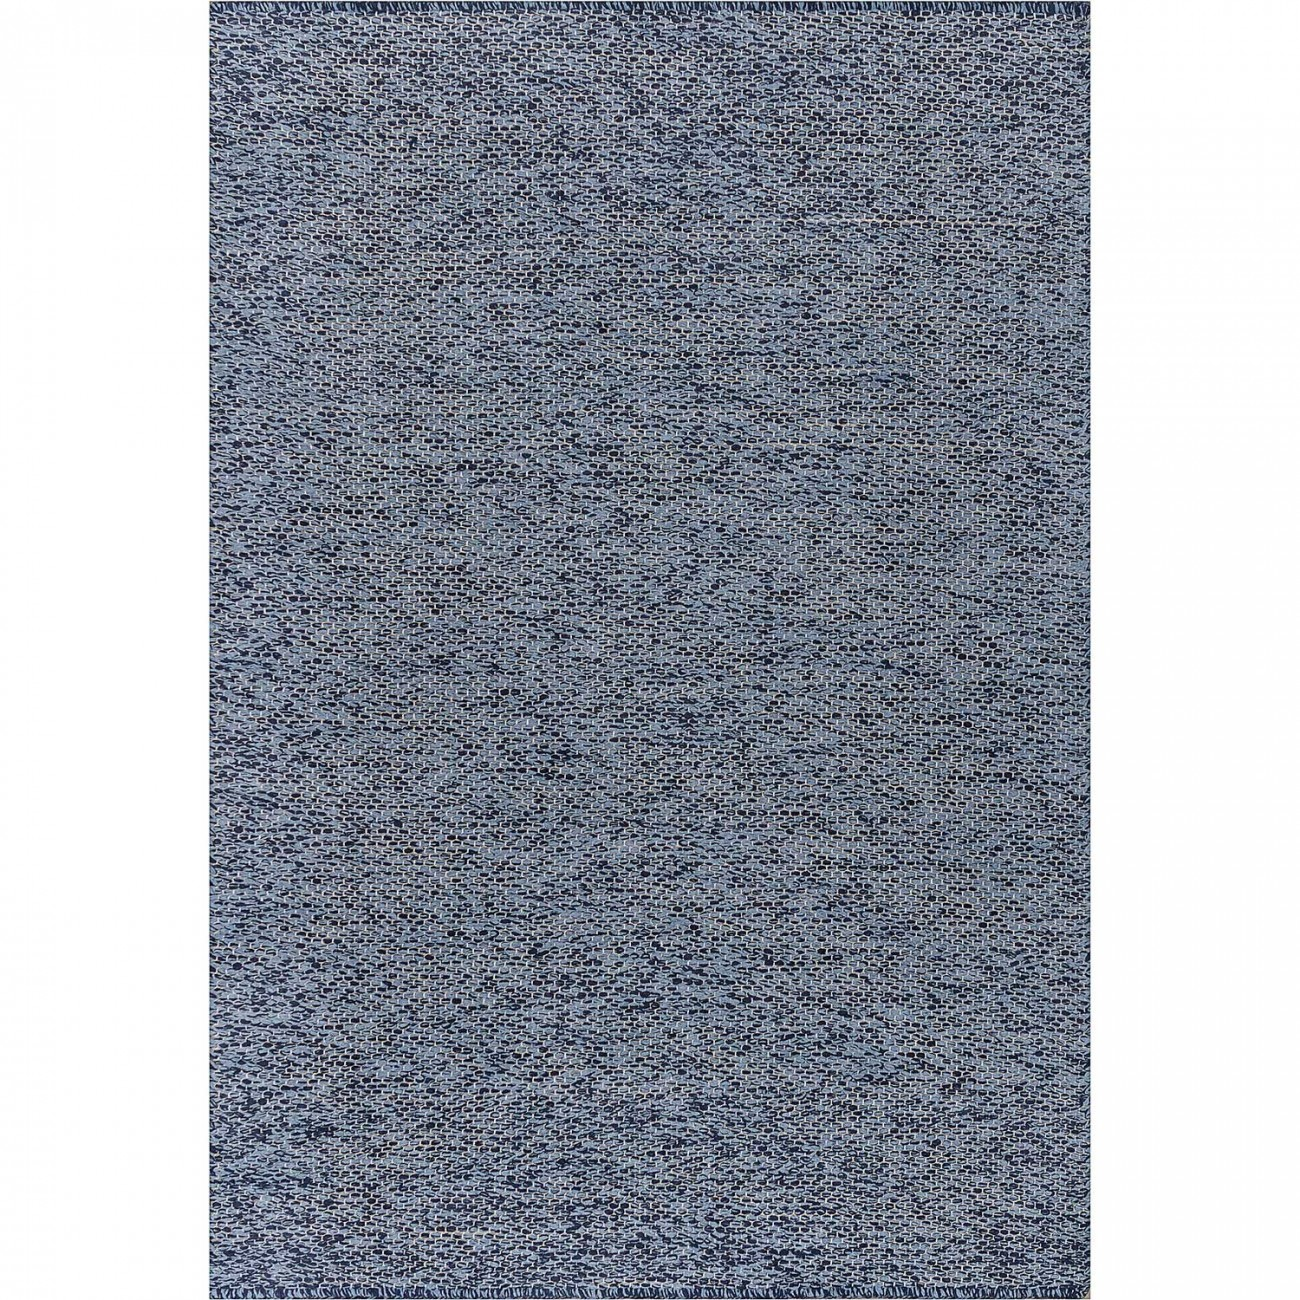 Tapete Tear Encorpado Azul Mesclado 100x150